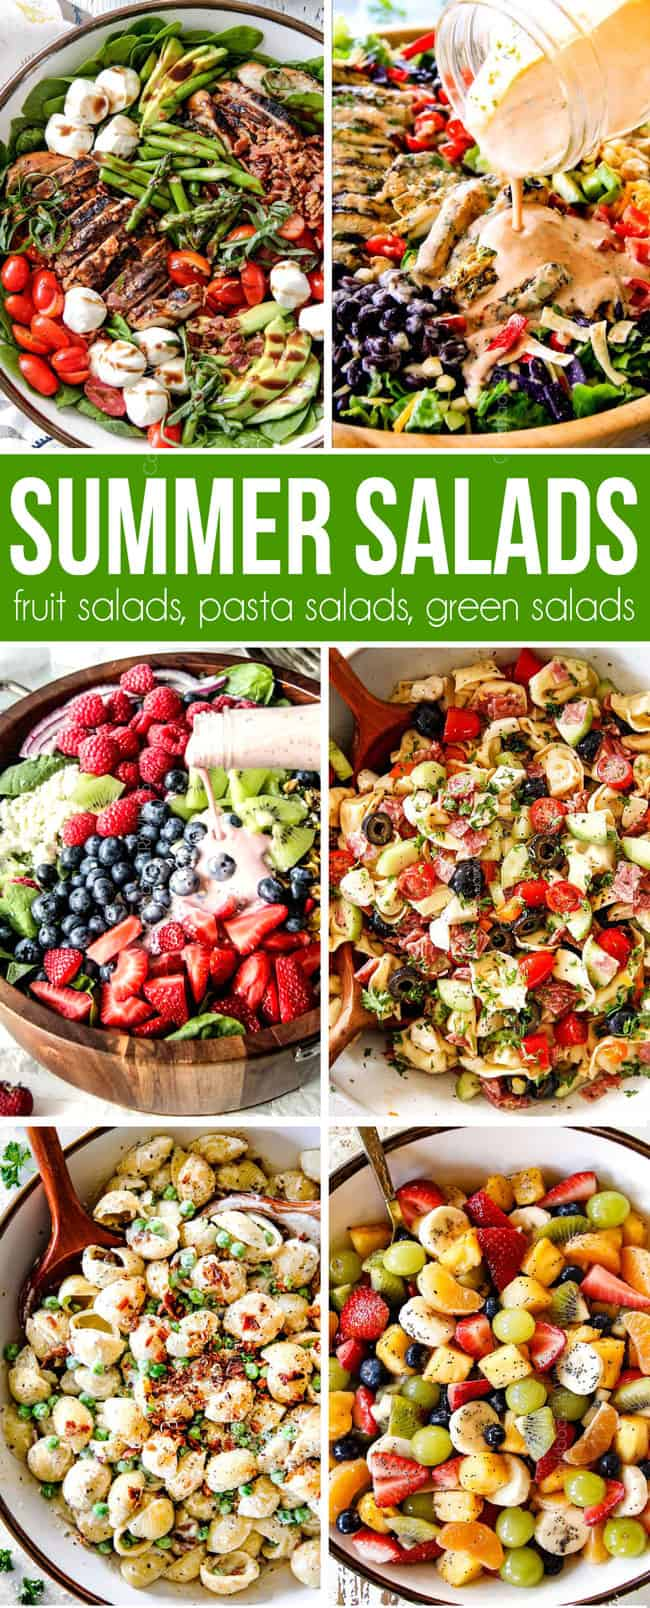 The best summer salad recipes from fruit salads to green salads tot pasta salads all in one place!